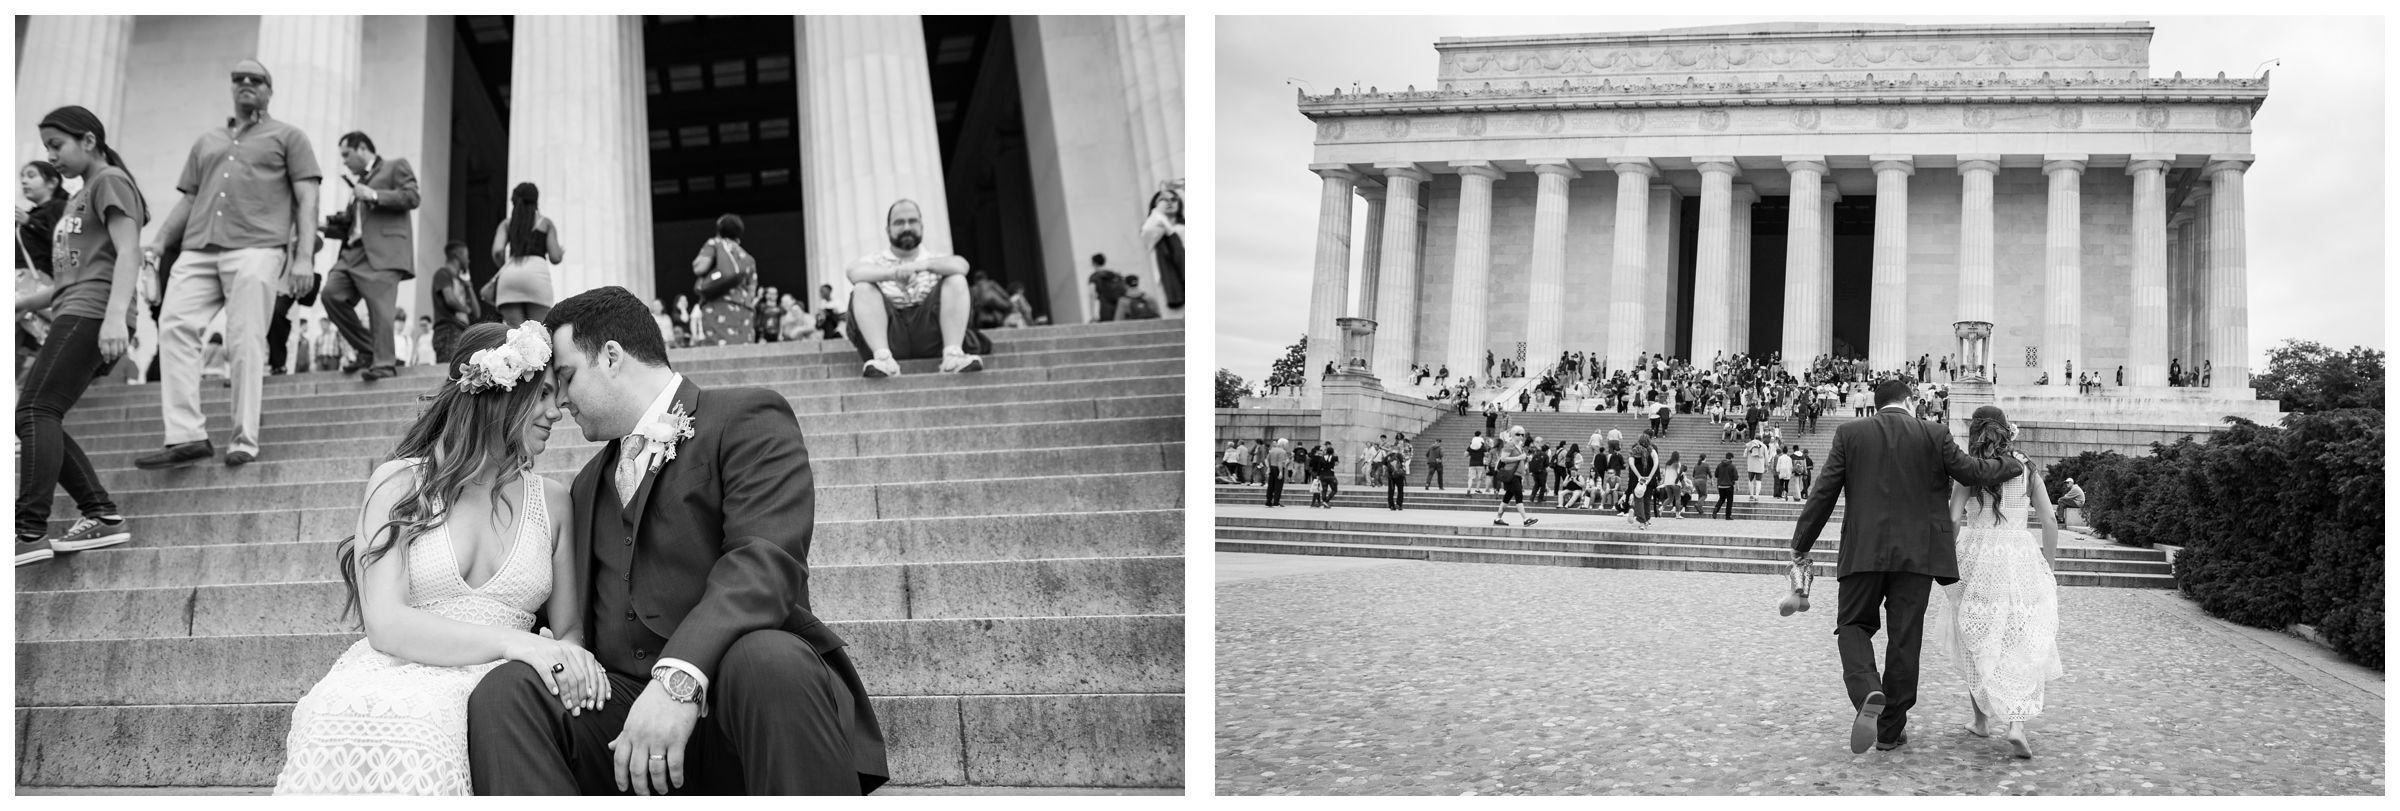 bride and groom portraits at Lincoln Memorial during DC monument wedding day in Washington